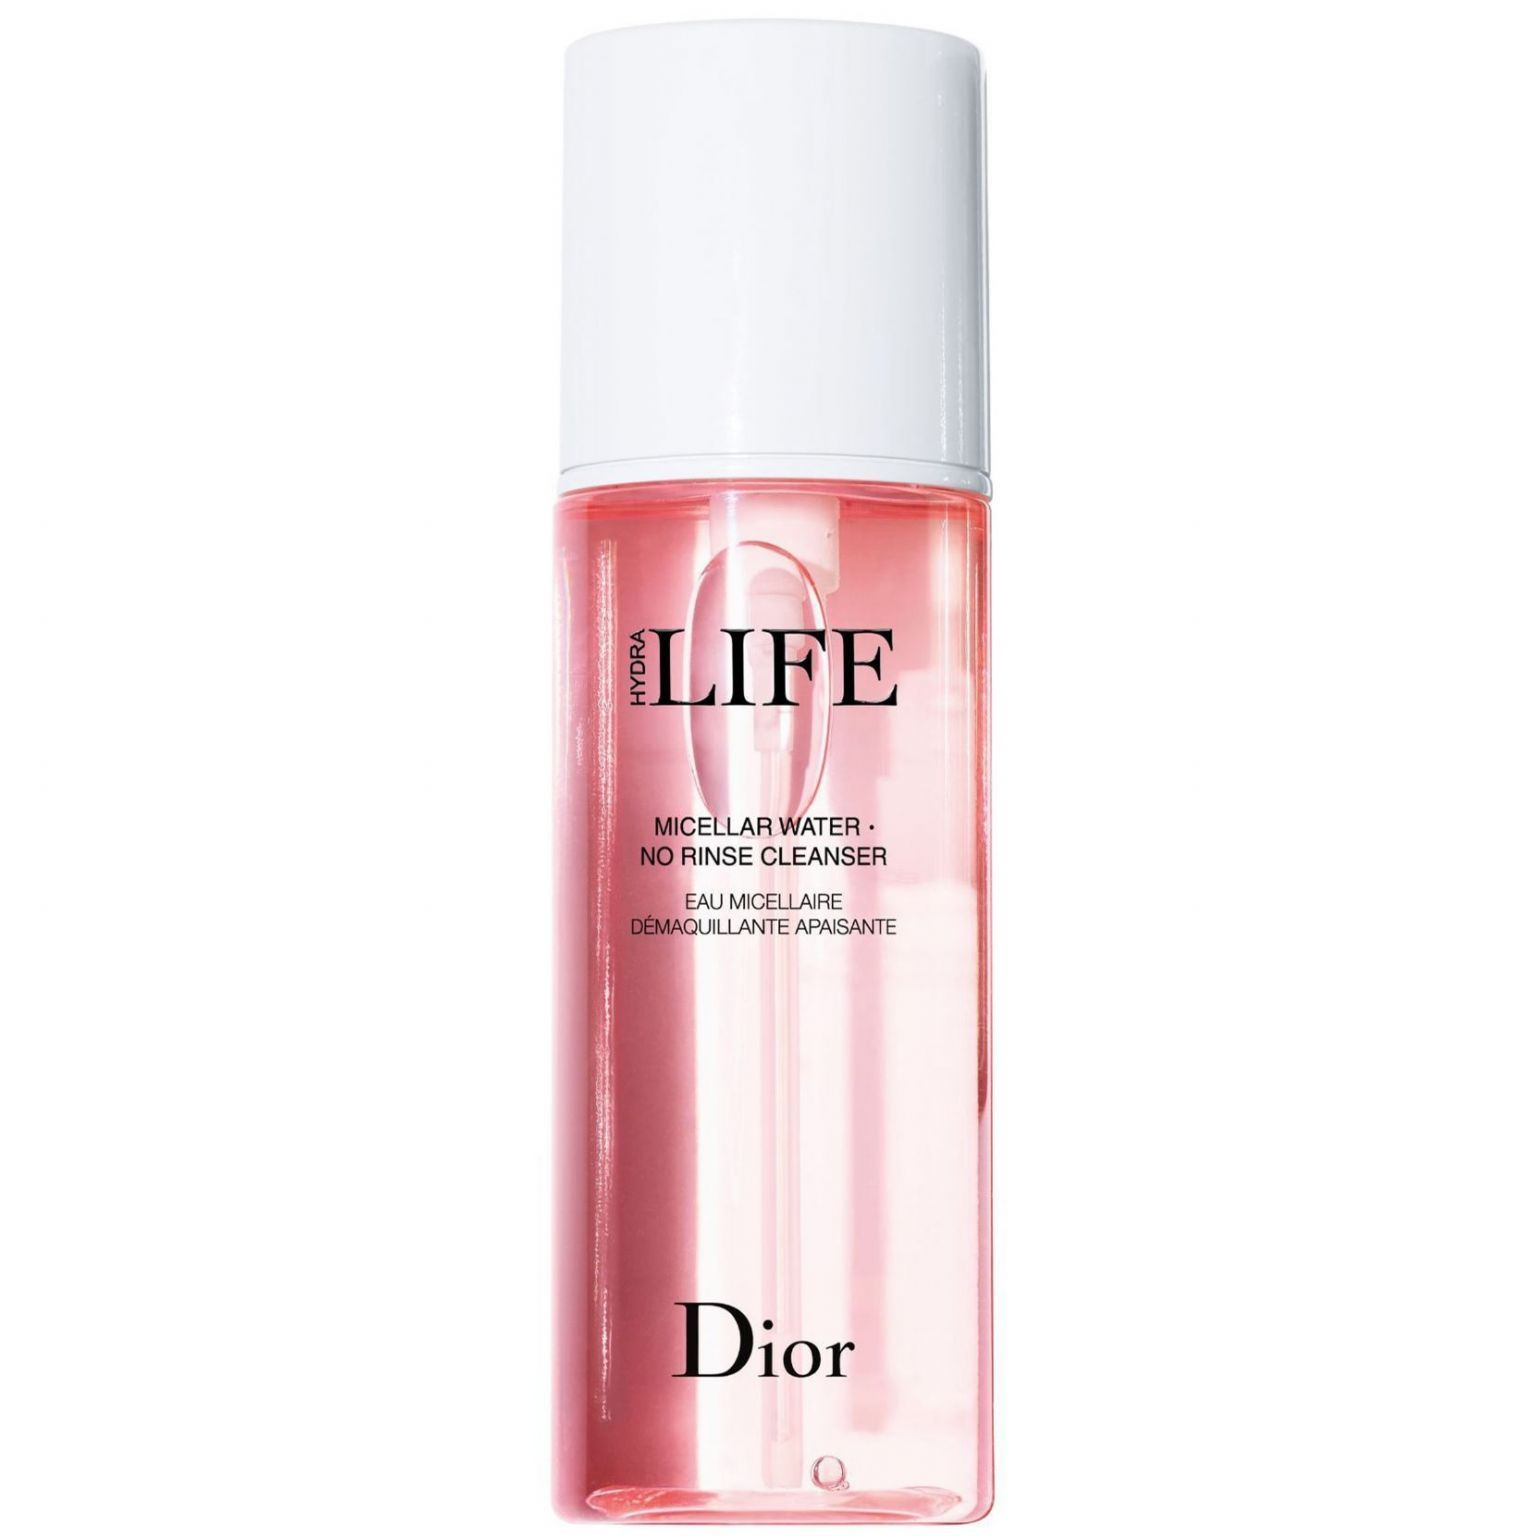 Hydra Life Micellar Water No Rinse Cleanser